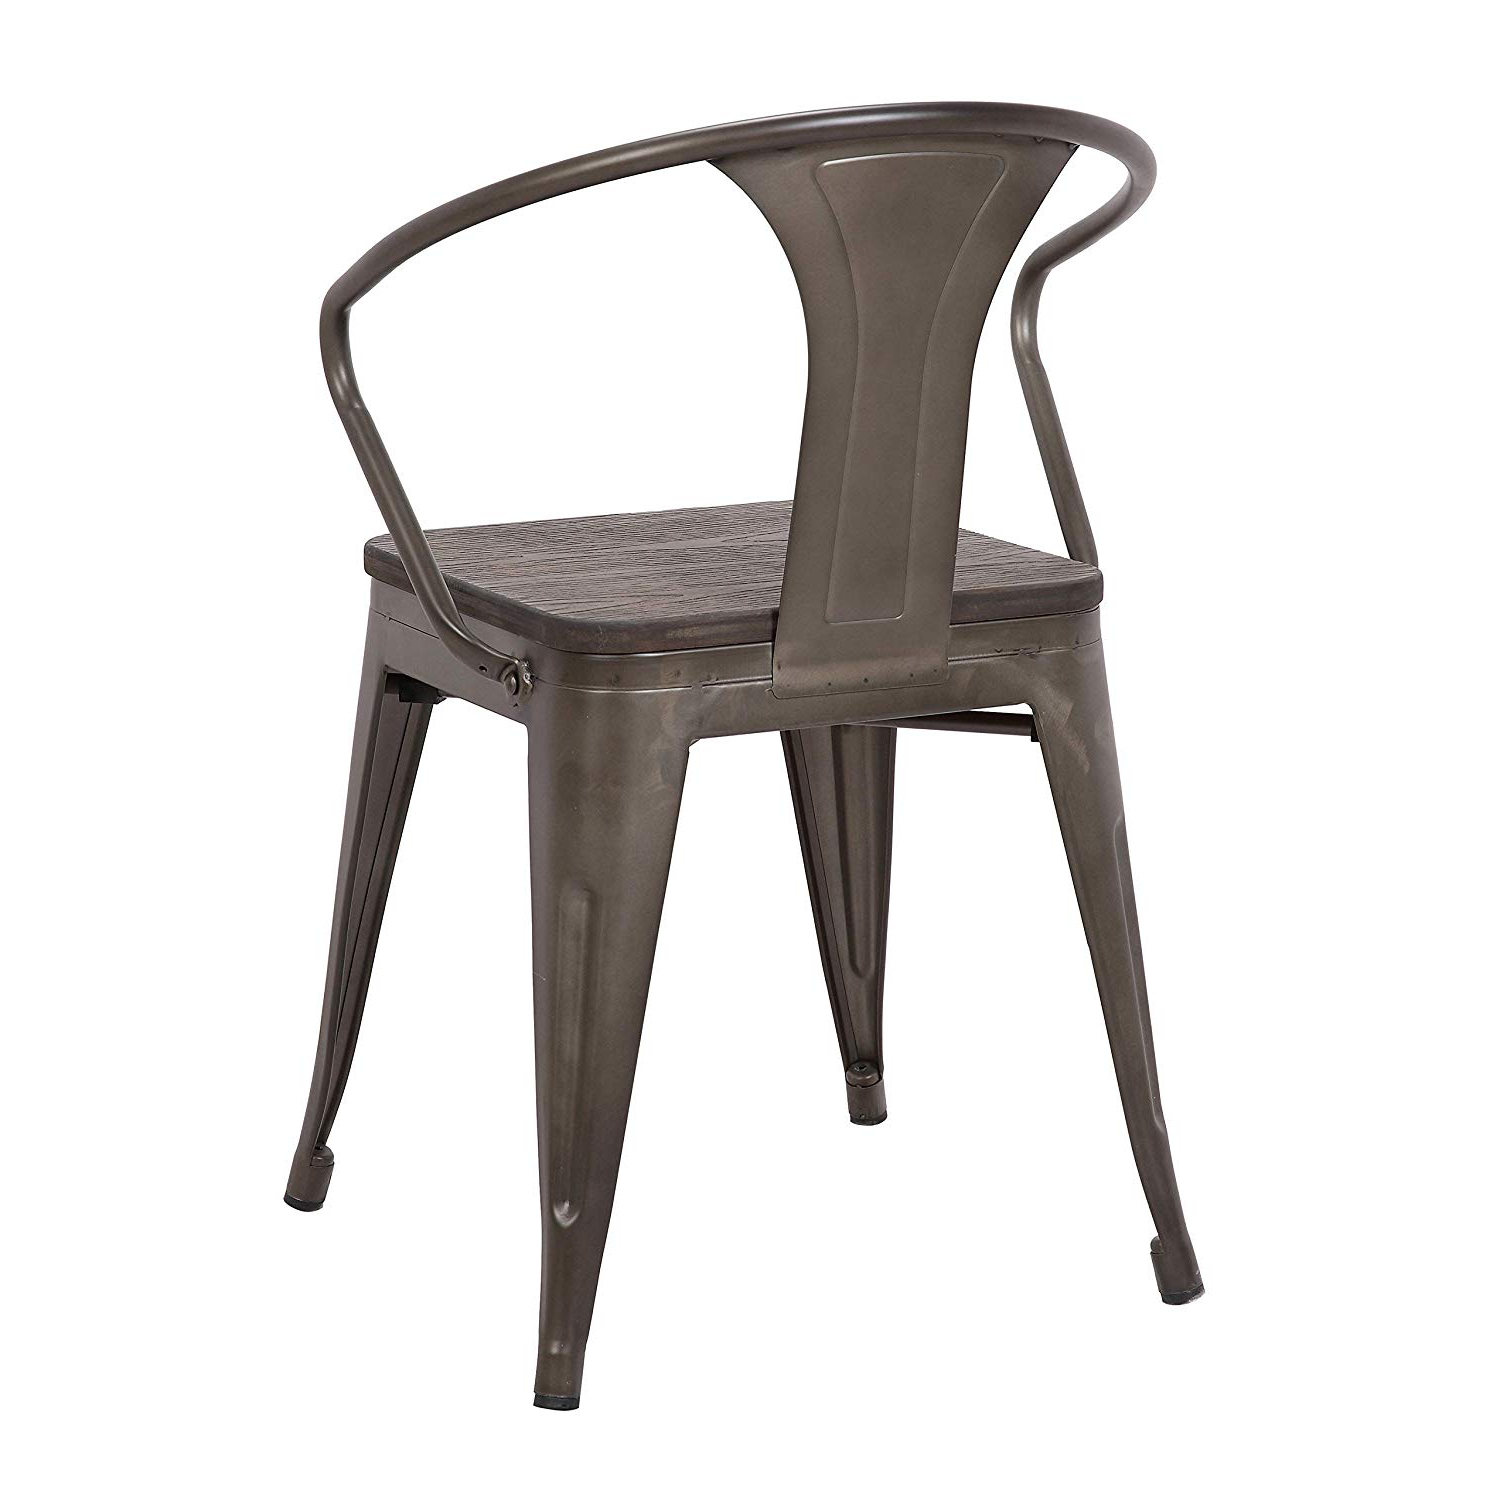 Well Liked Amazon – Lumisource Waco Chair In Antique And Espresso For Vintage Cream Frame And Espresso Bamboo Dining Tables (Gallery 21 of 30)